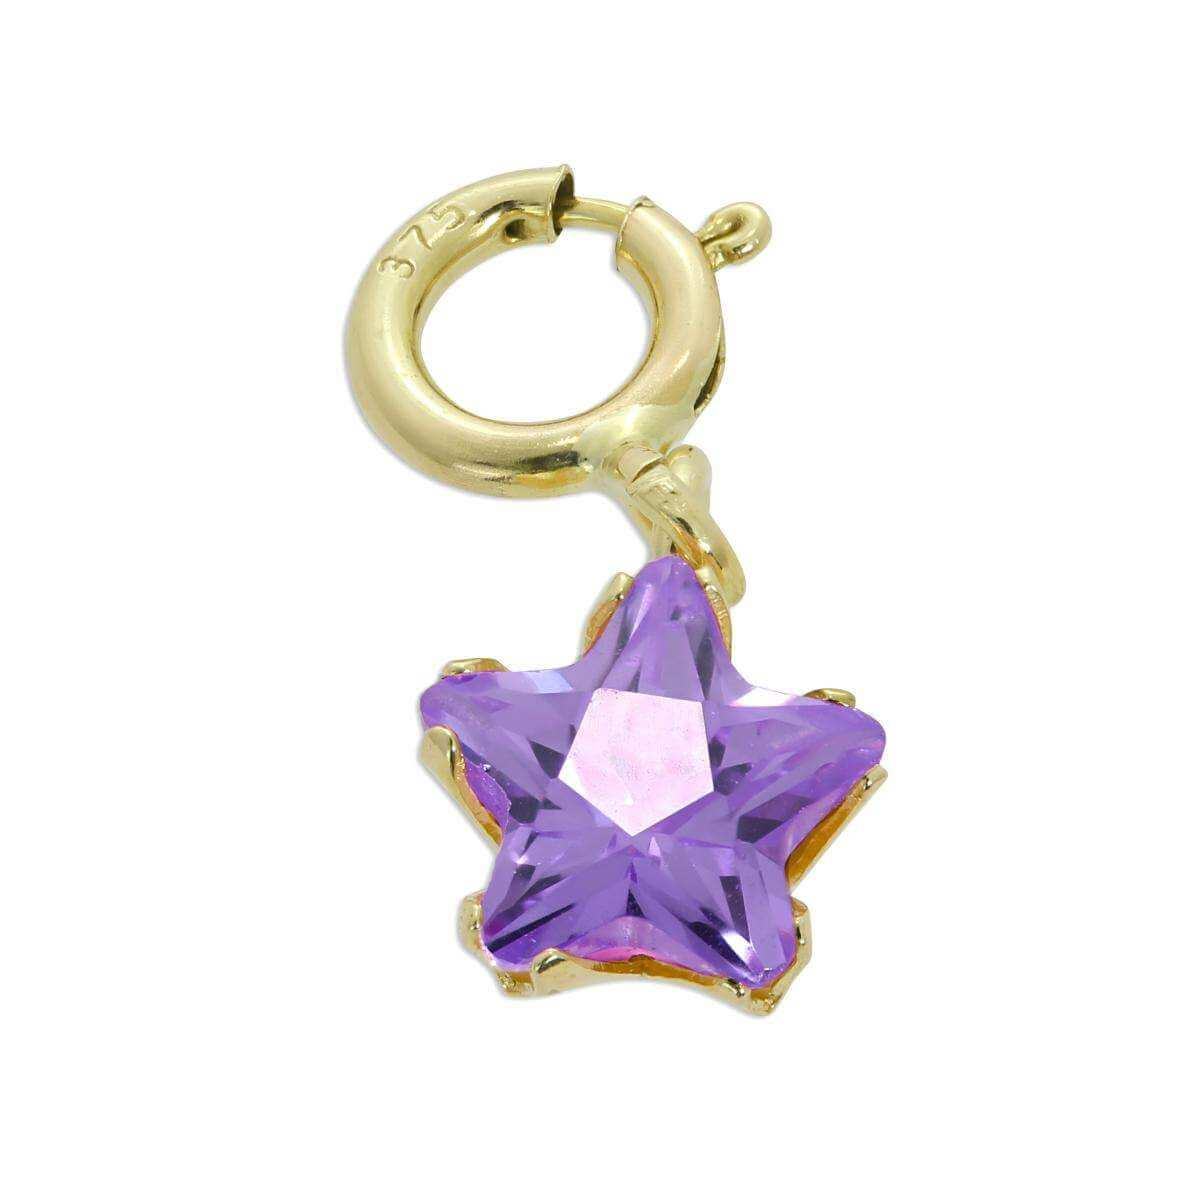 9ct Gold & Amethyst CZ Small Star Clip on Charm